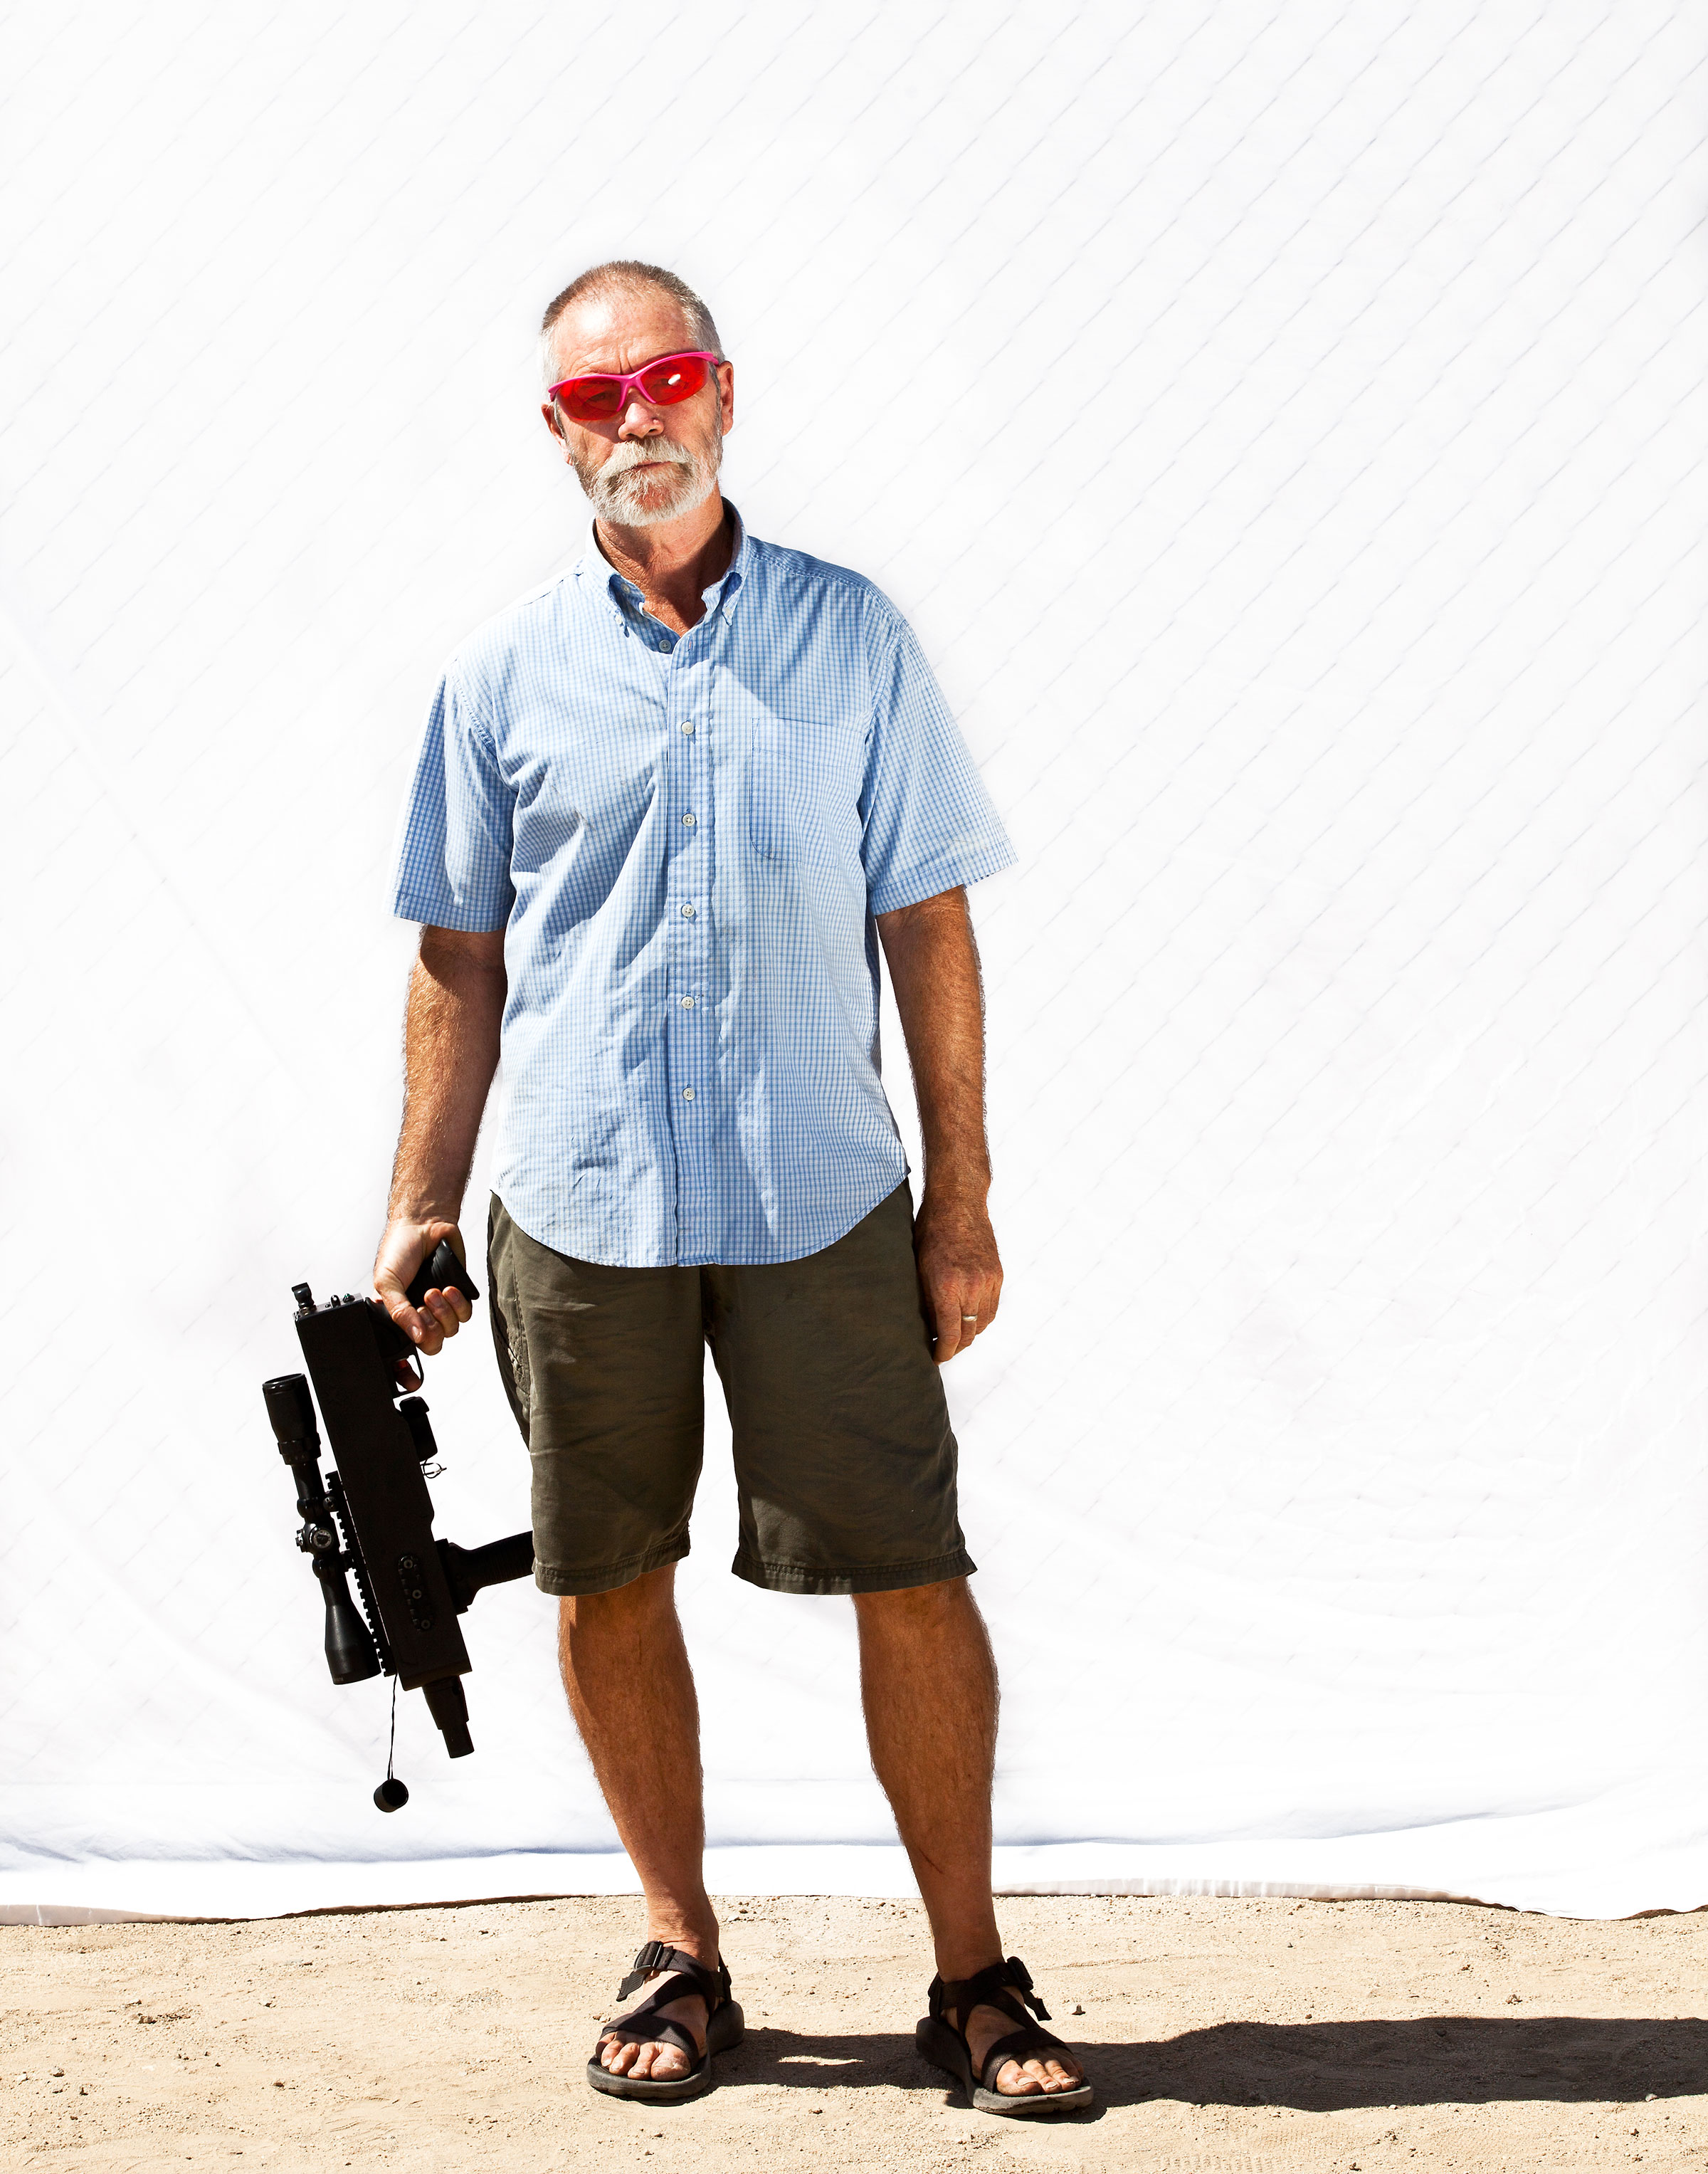 Tim Shields, with his laser, is on a mission to protect desert tortoises from predatory ravens. Tom Fowlks